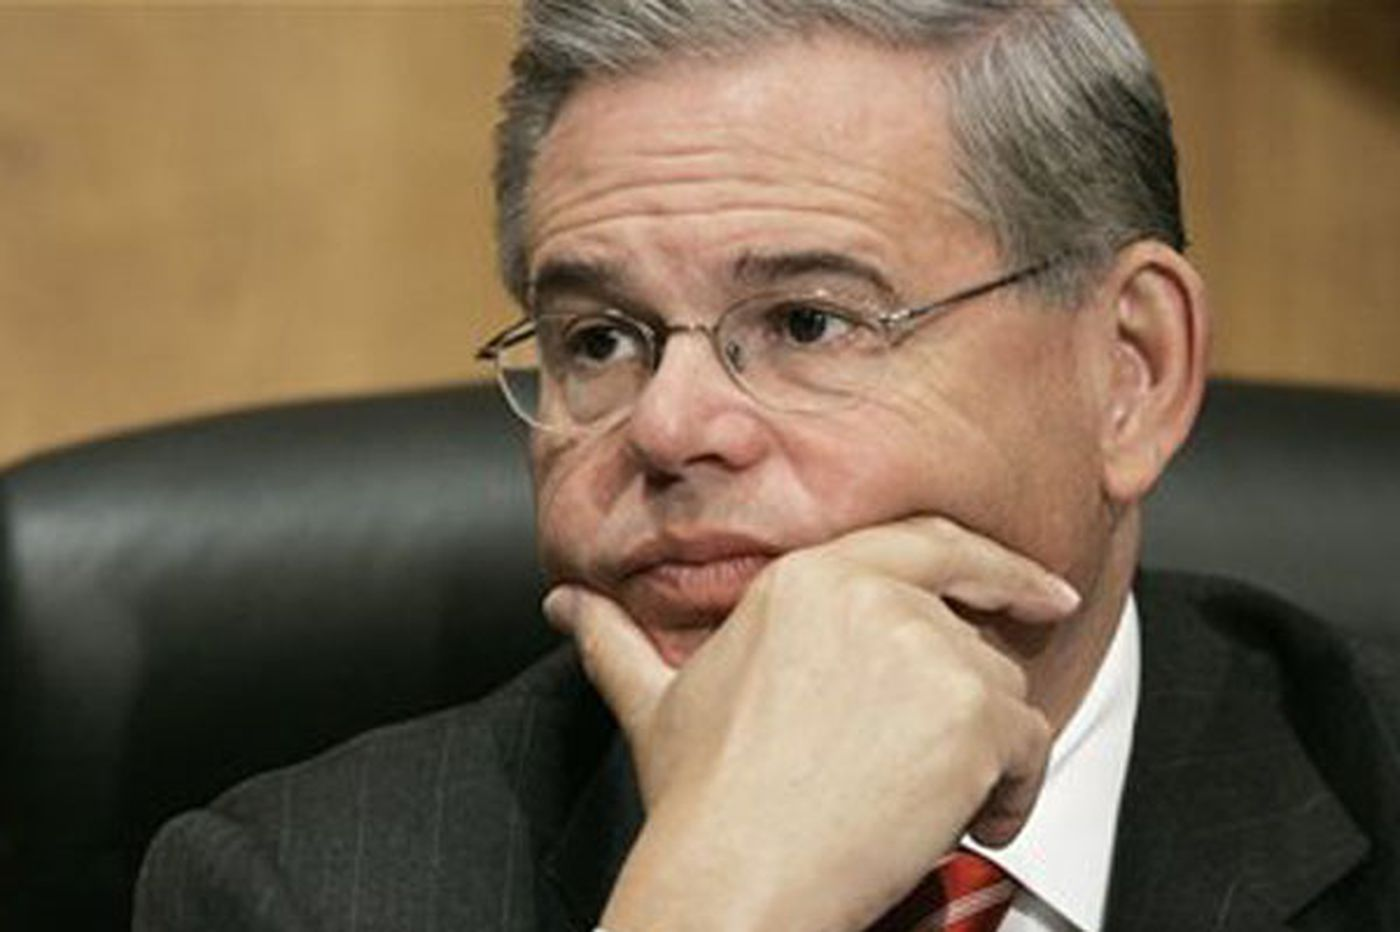 Menendez denies reports linking him to prostitution